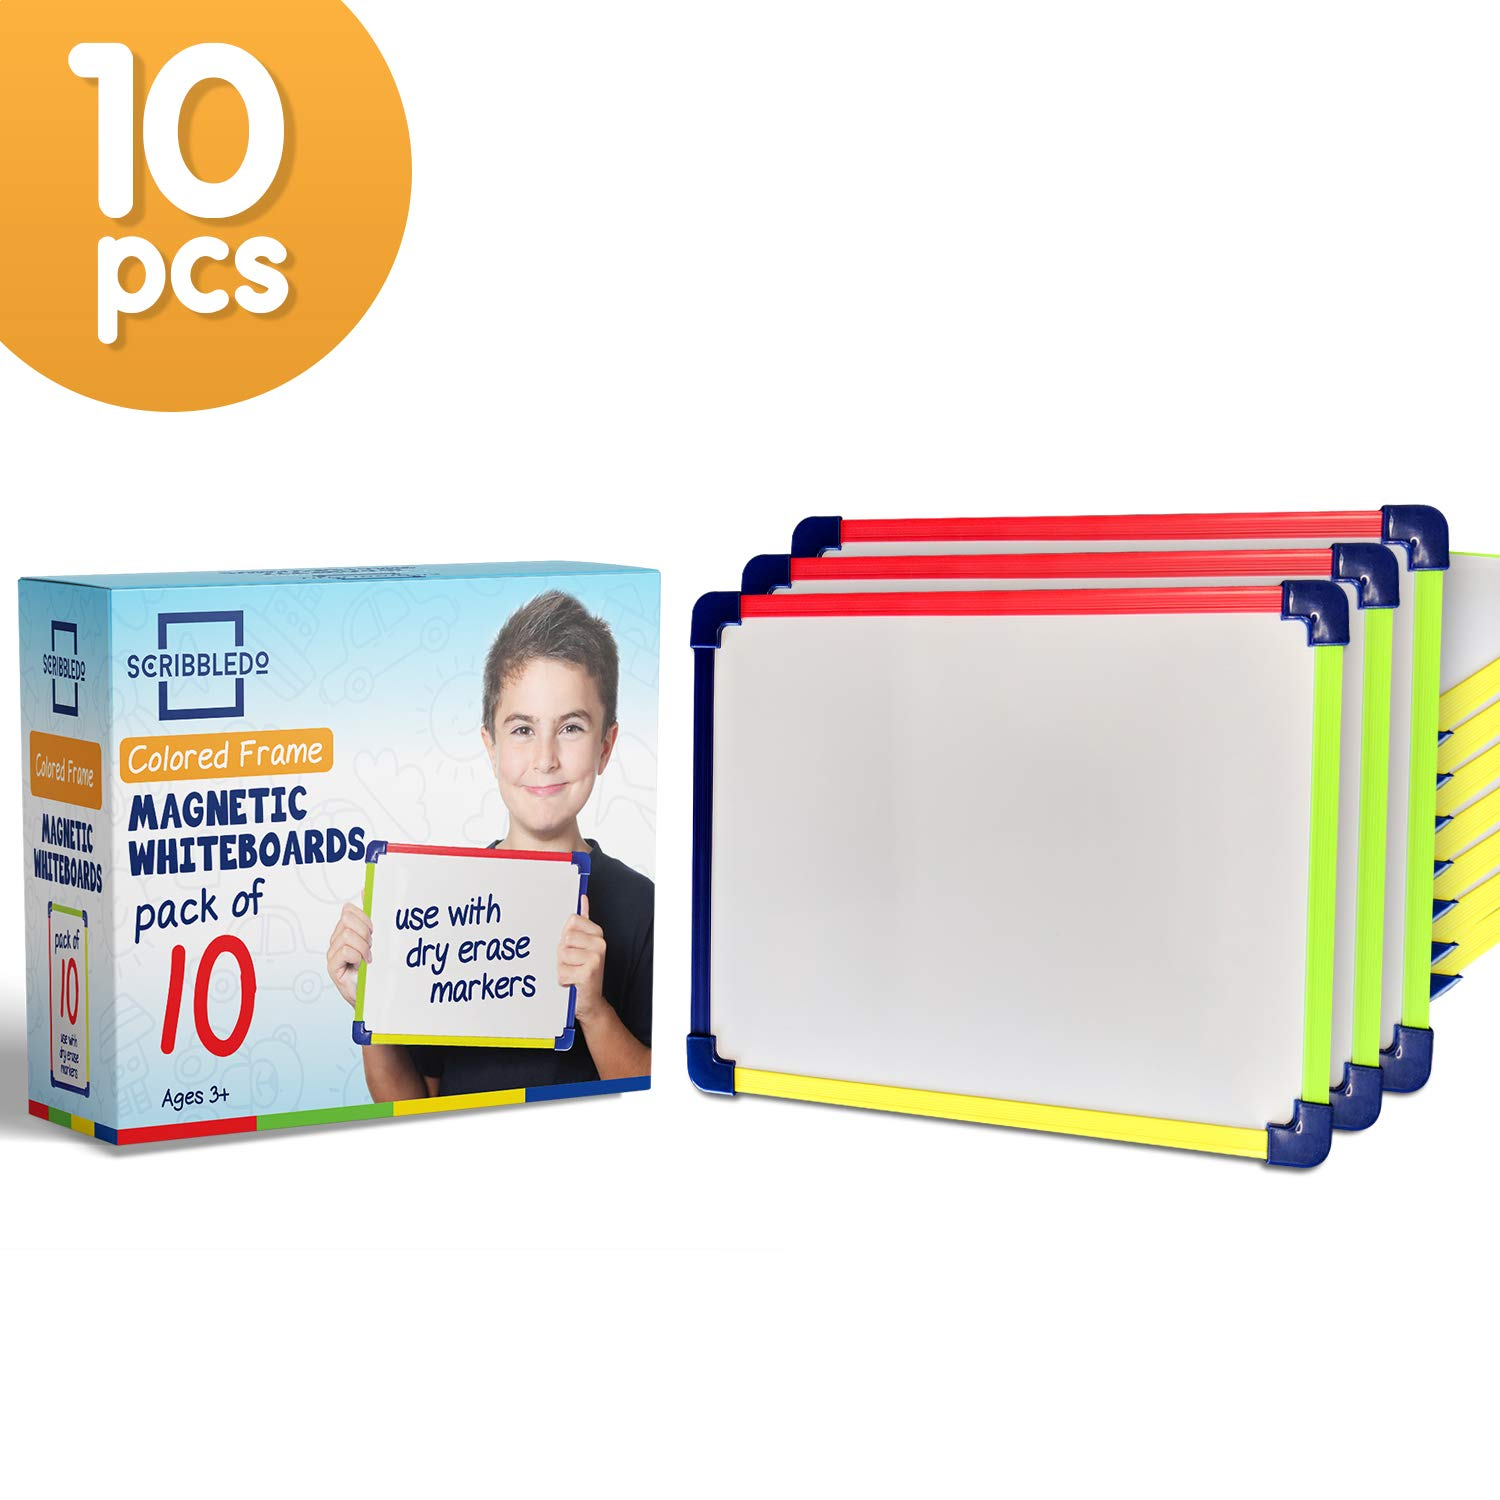 SCRIBBLEDO Colored Frame Magnetic Dry Erase White Boards Pack of 10 l 9'' X 12'' Whiteboard by SCRIBBLEDO